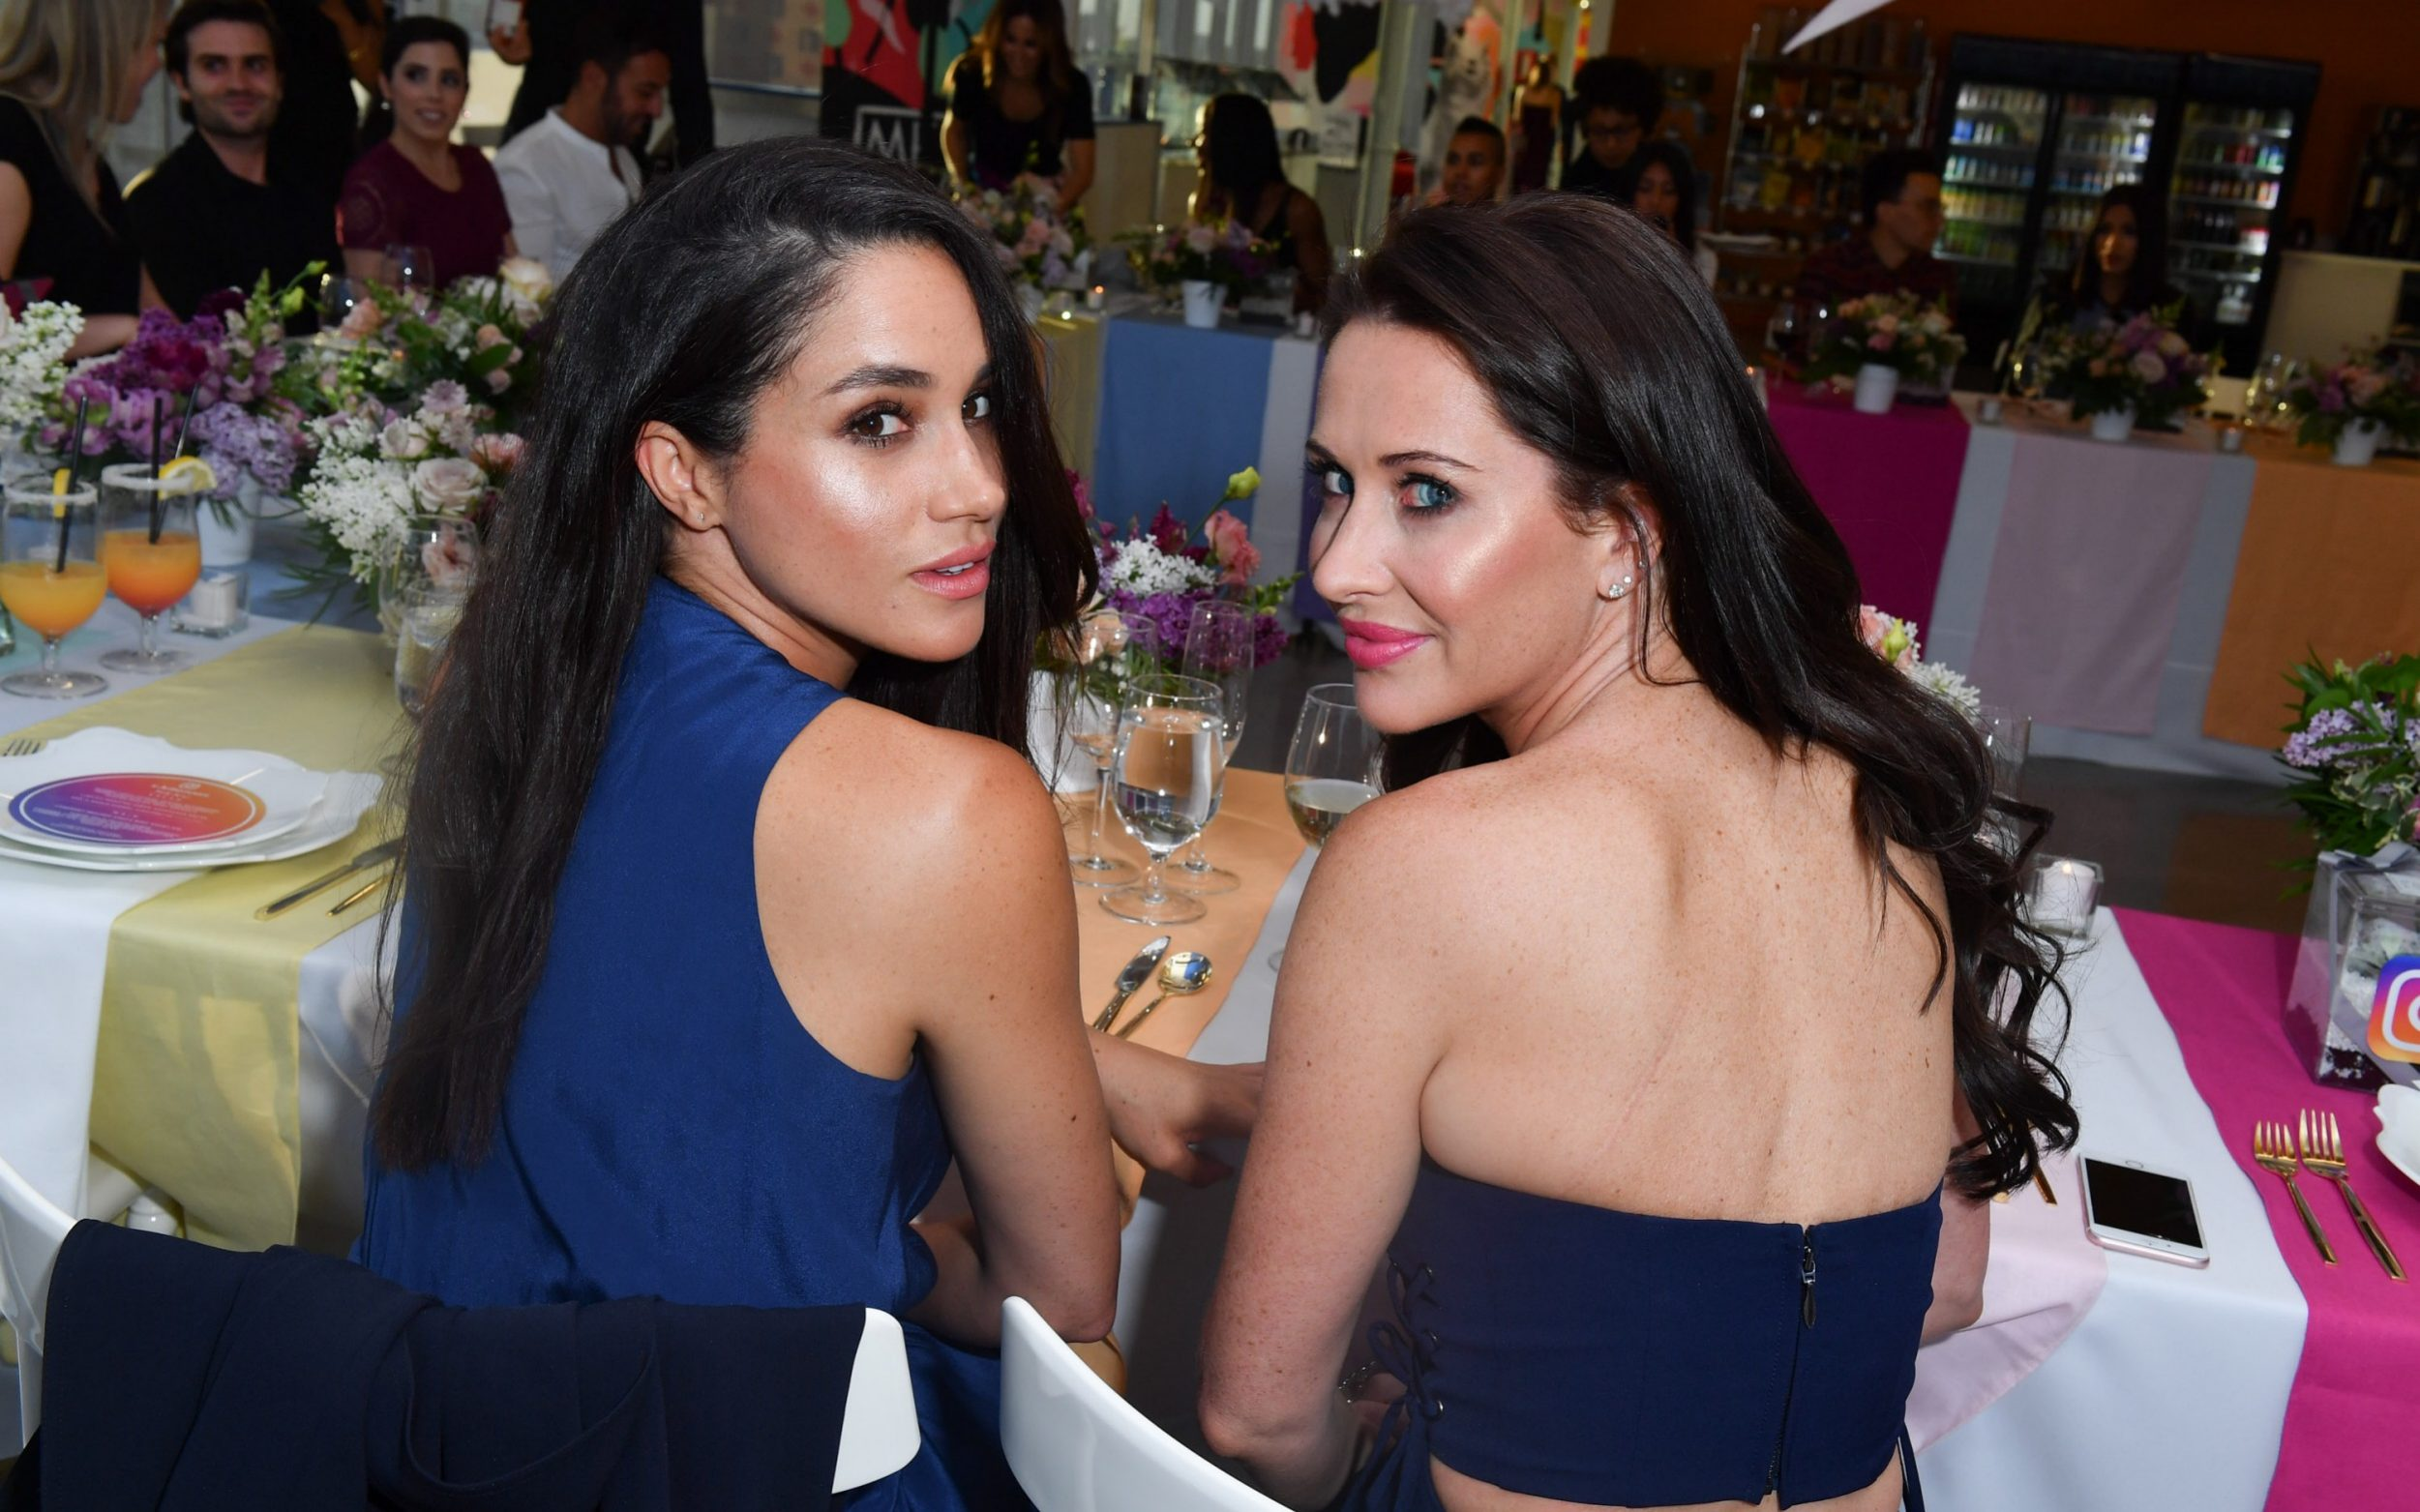 Meghan Markles best friend sends love to all those who carry the weight of bullies in cryptic Instagram post